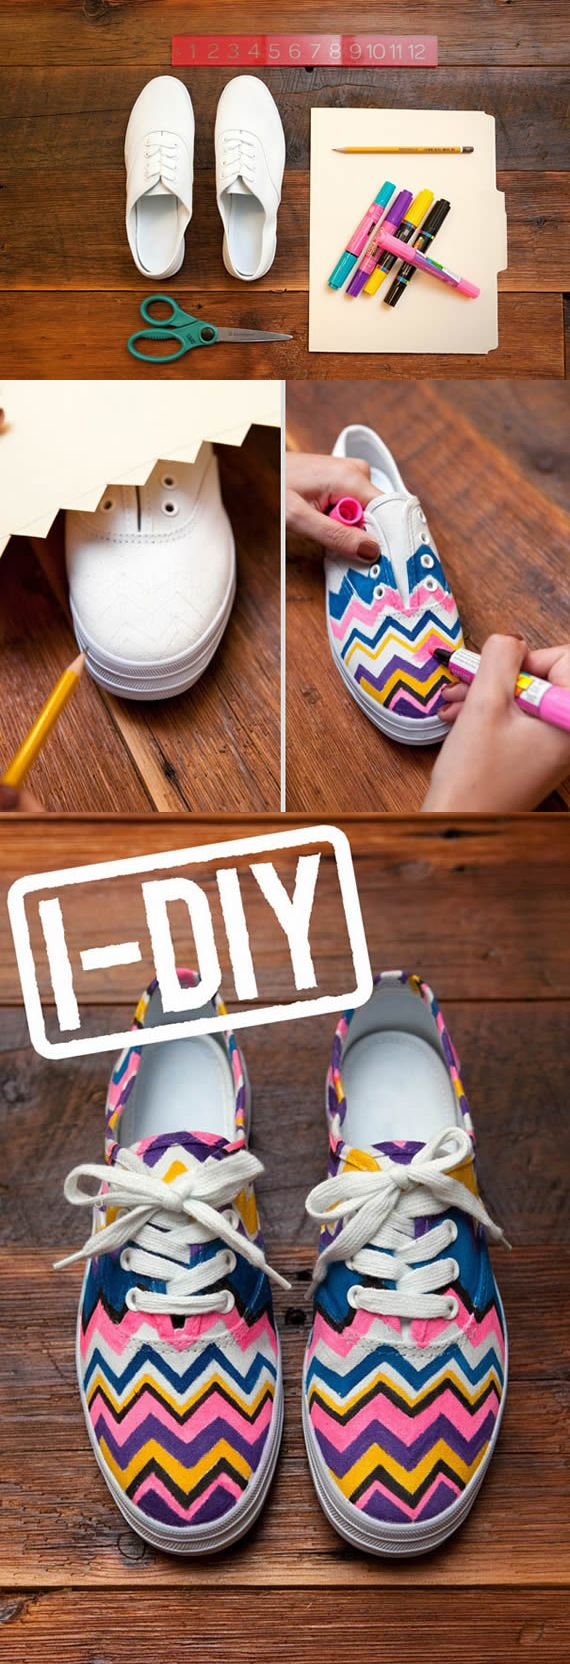 Transform old shoes into new ones with just a few supplies. Walgreens.com is making crafting easy and fun!